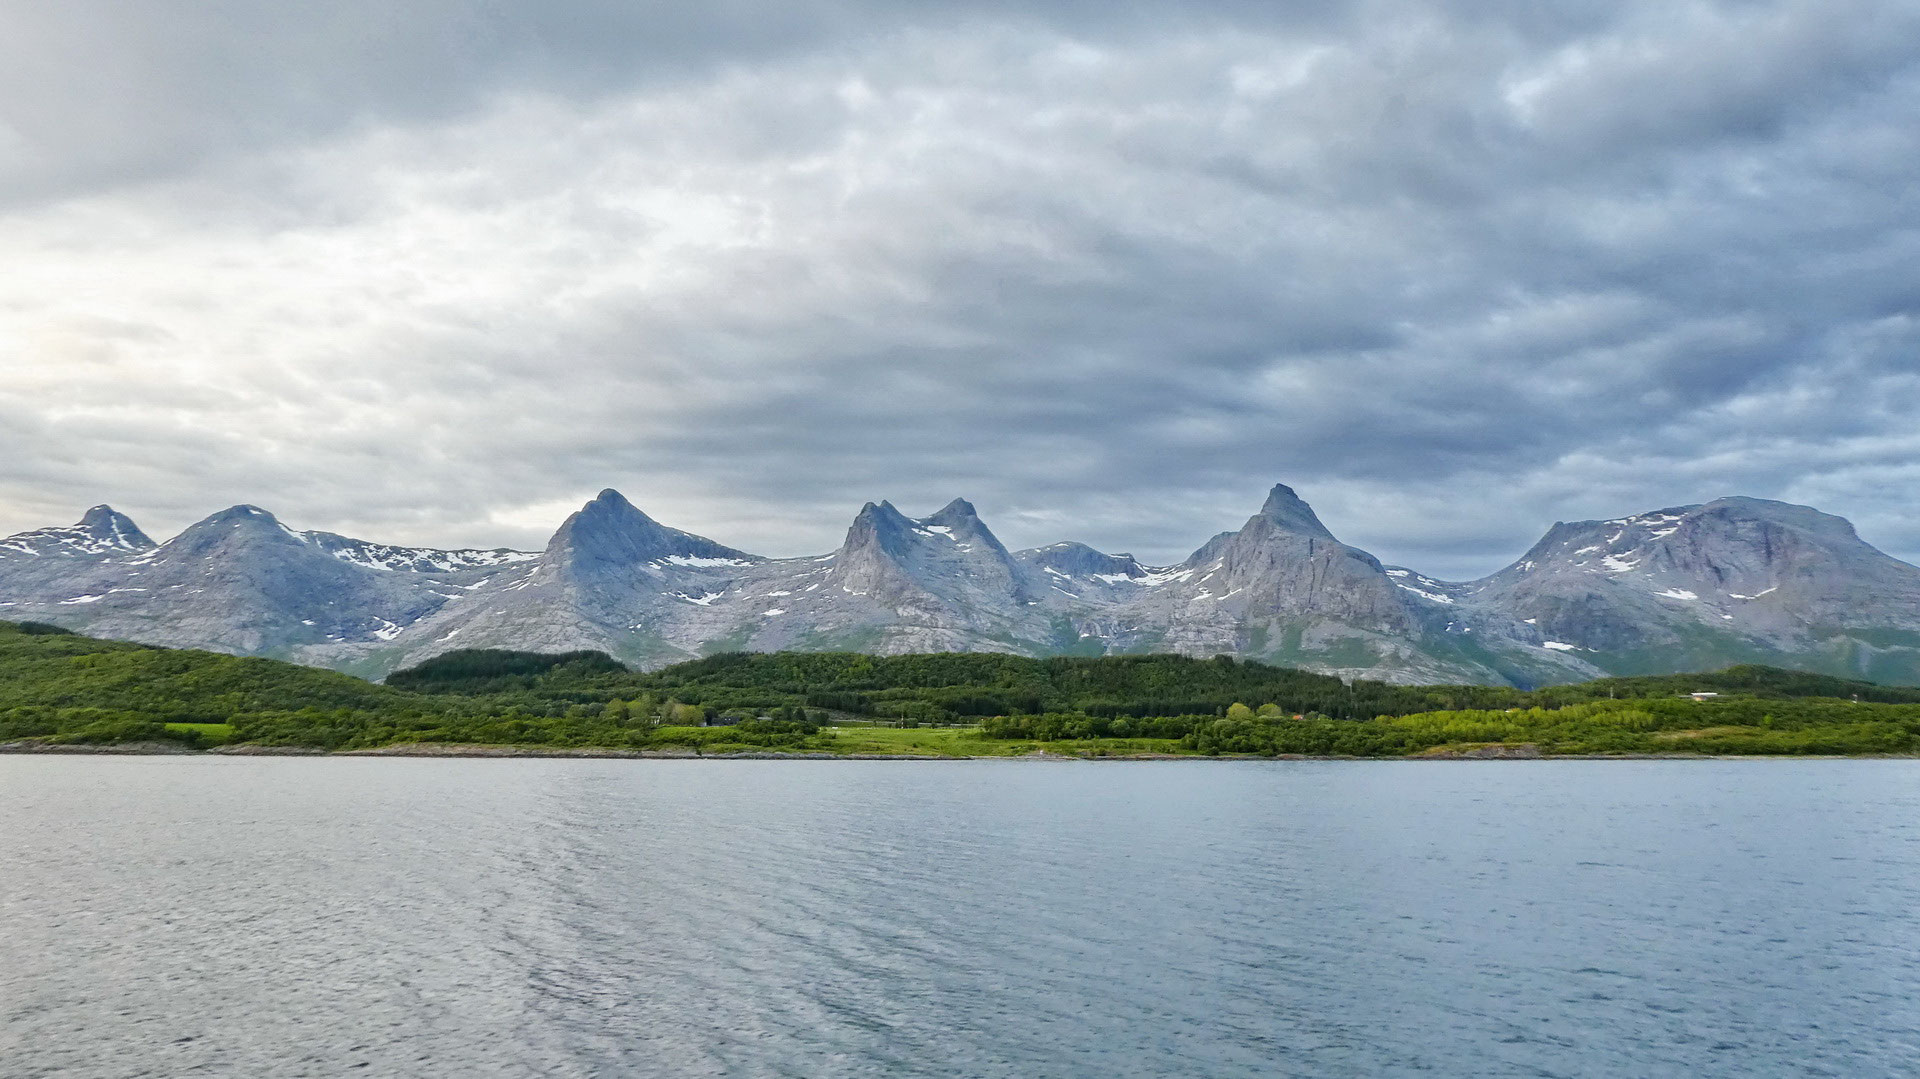 North State Auto >> Norway places & views # 6: Seven Sisters mountains - Mark König - business, consulting ...